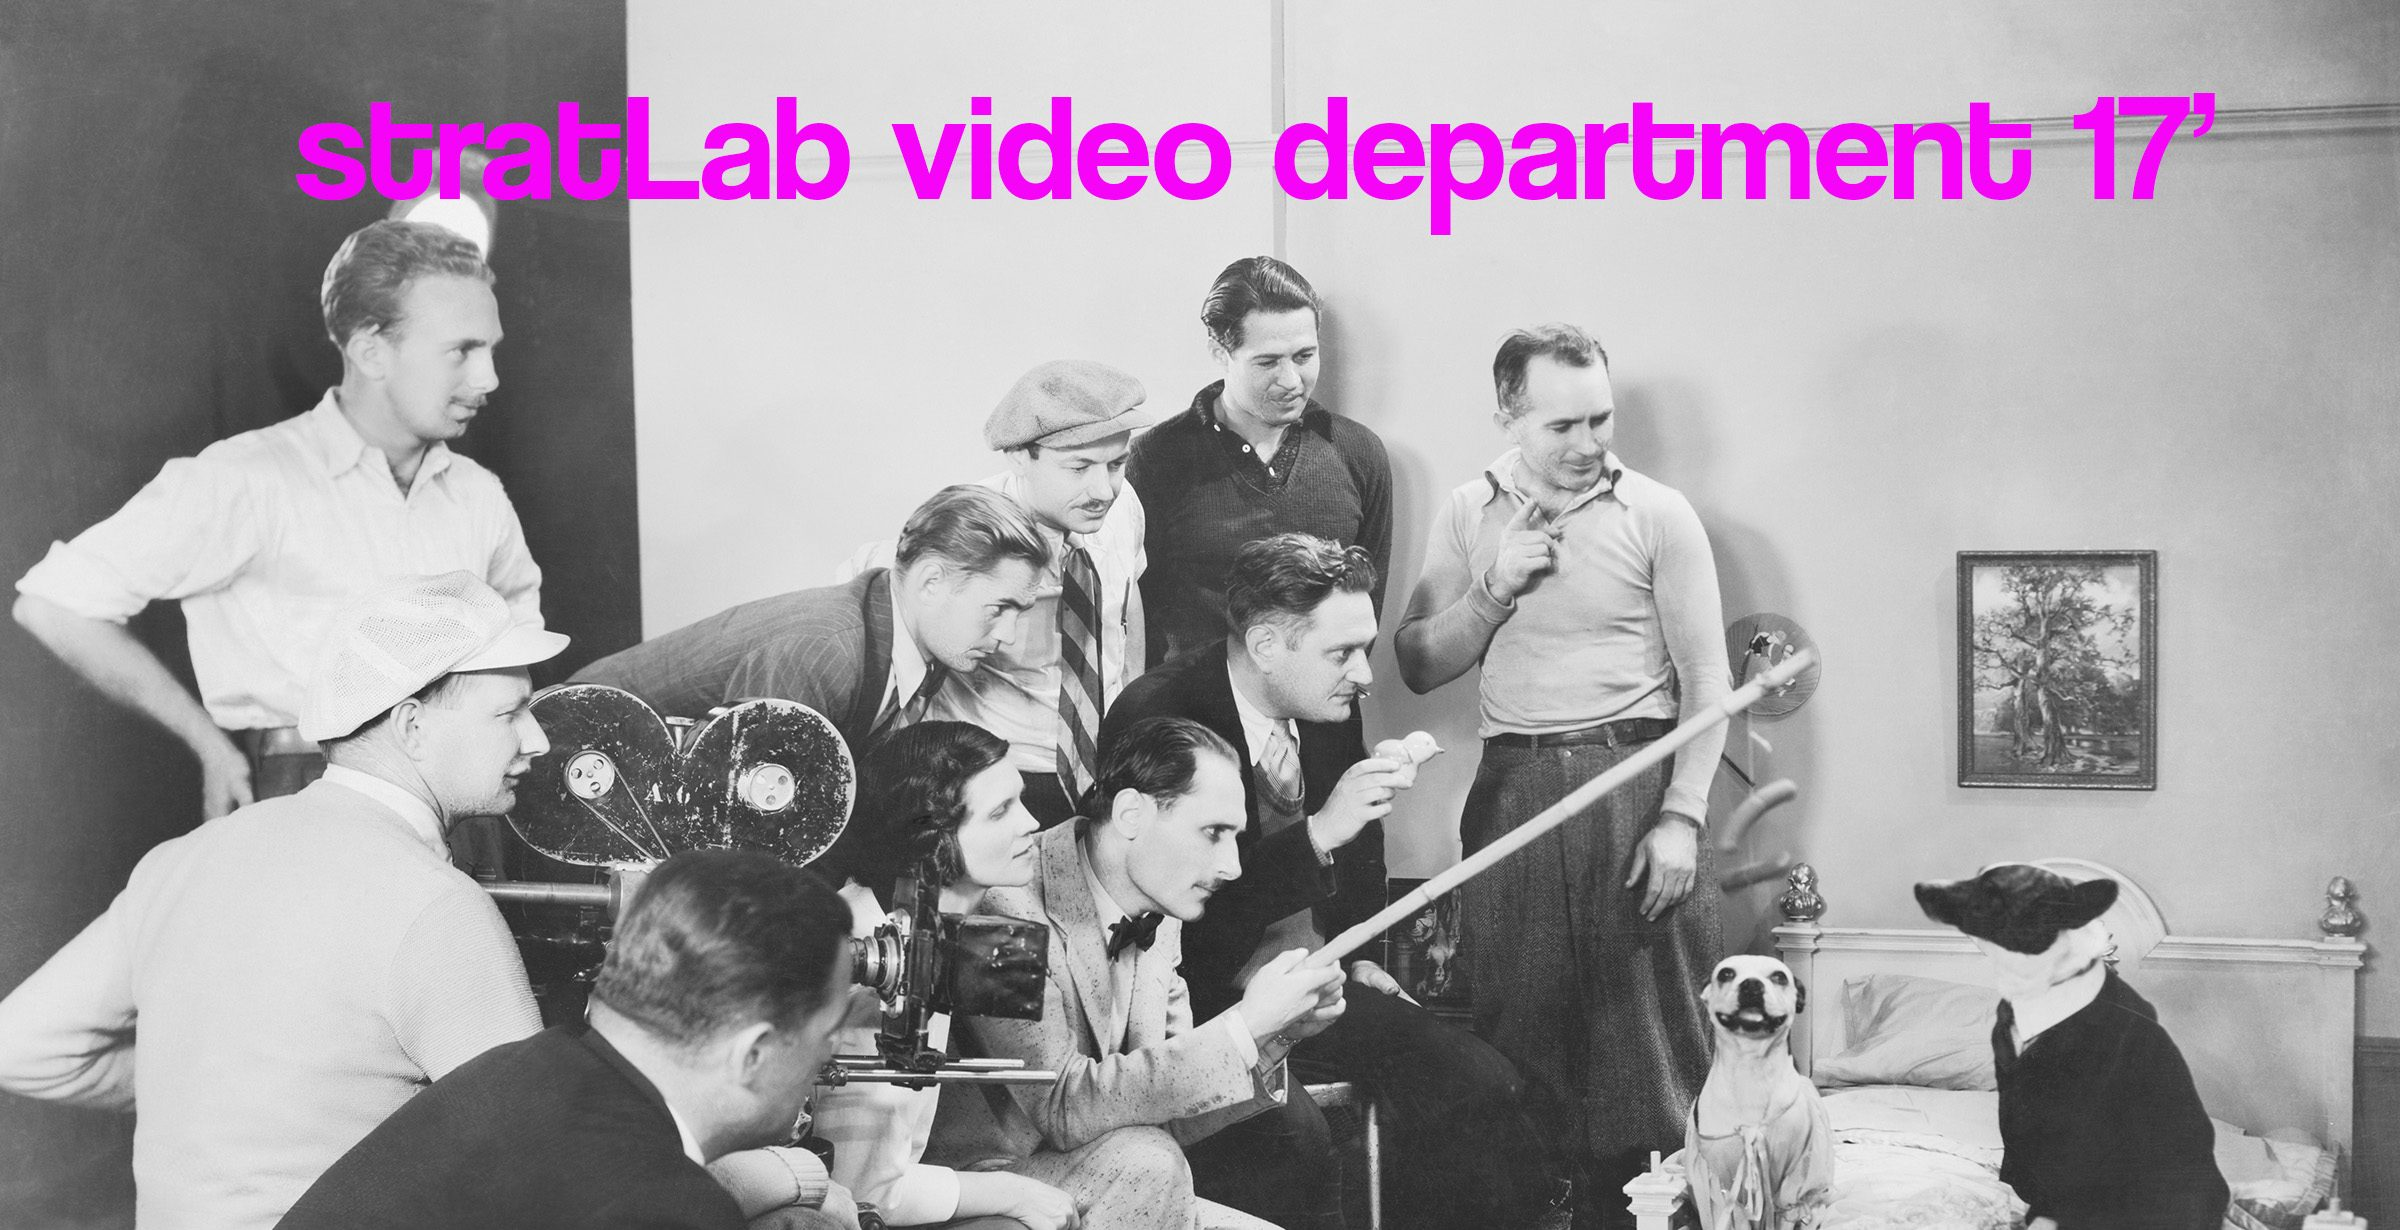 stratlab video department 17